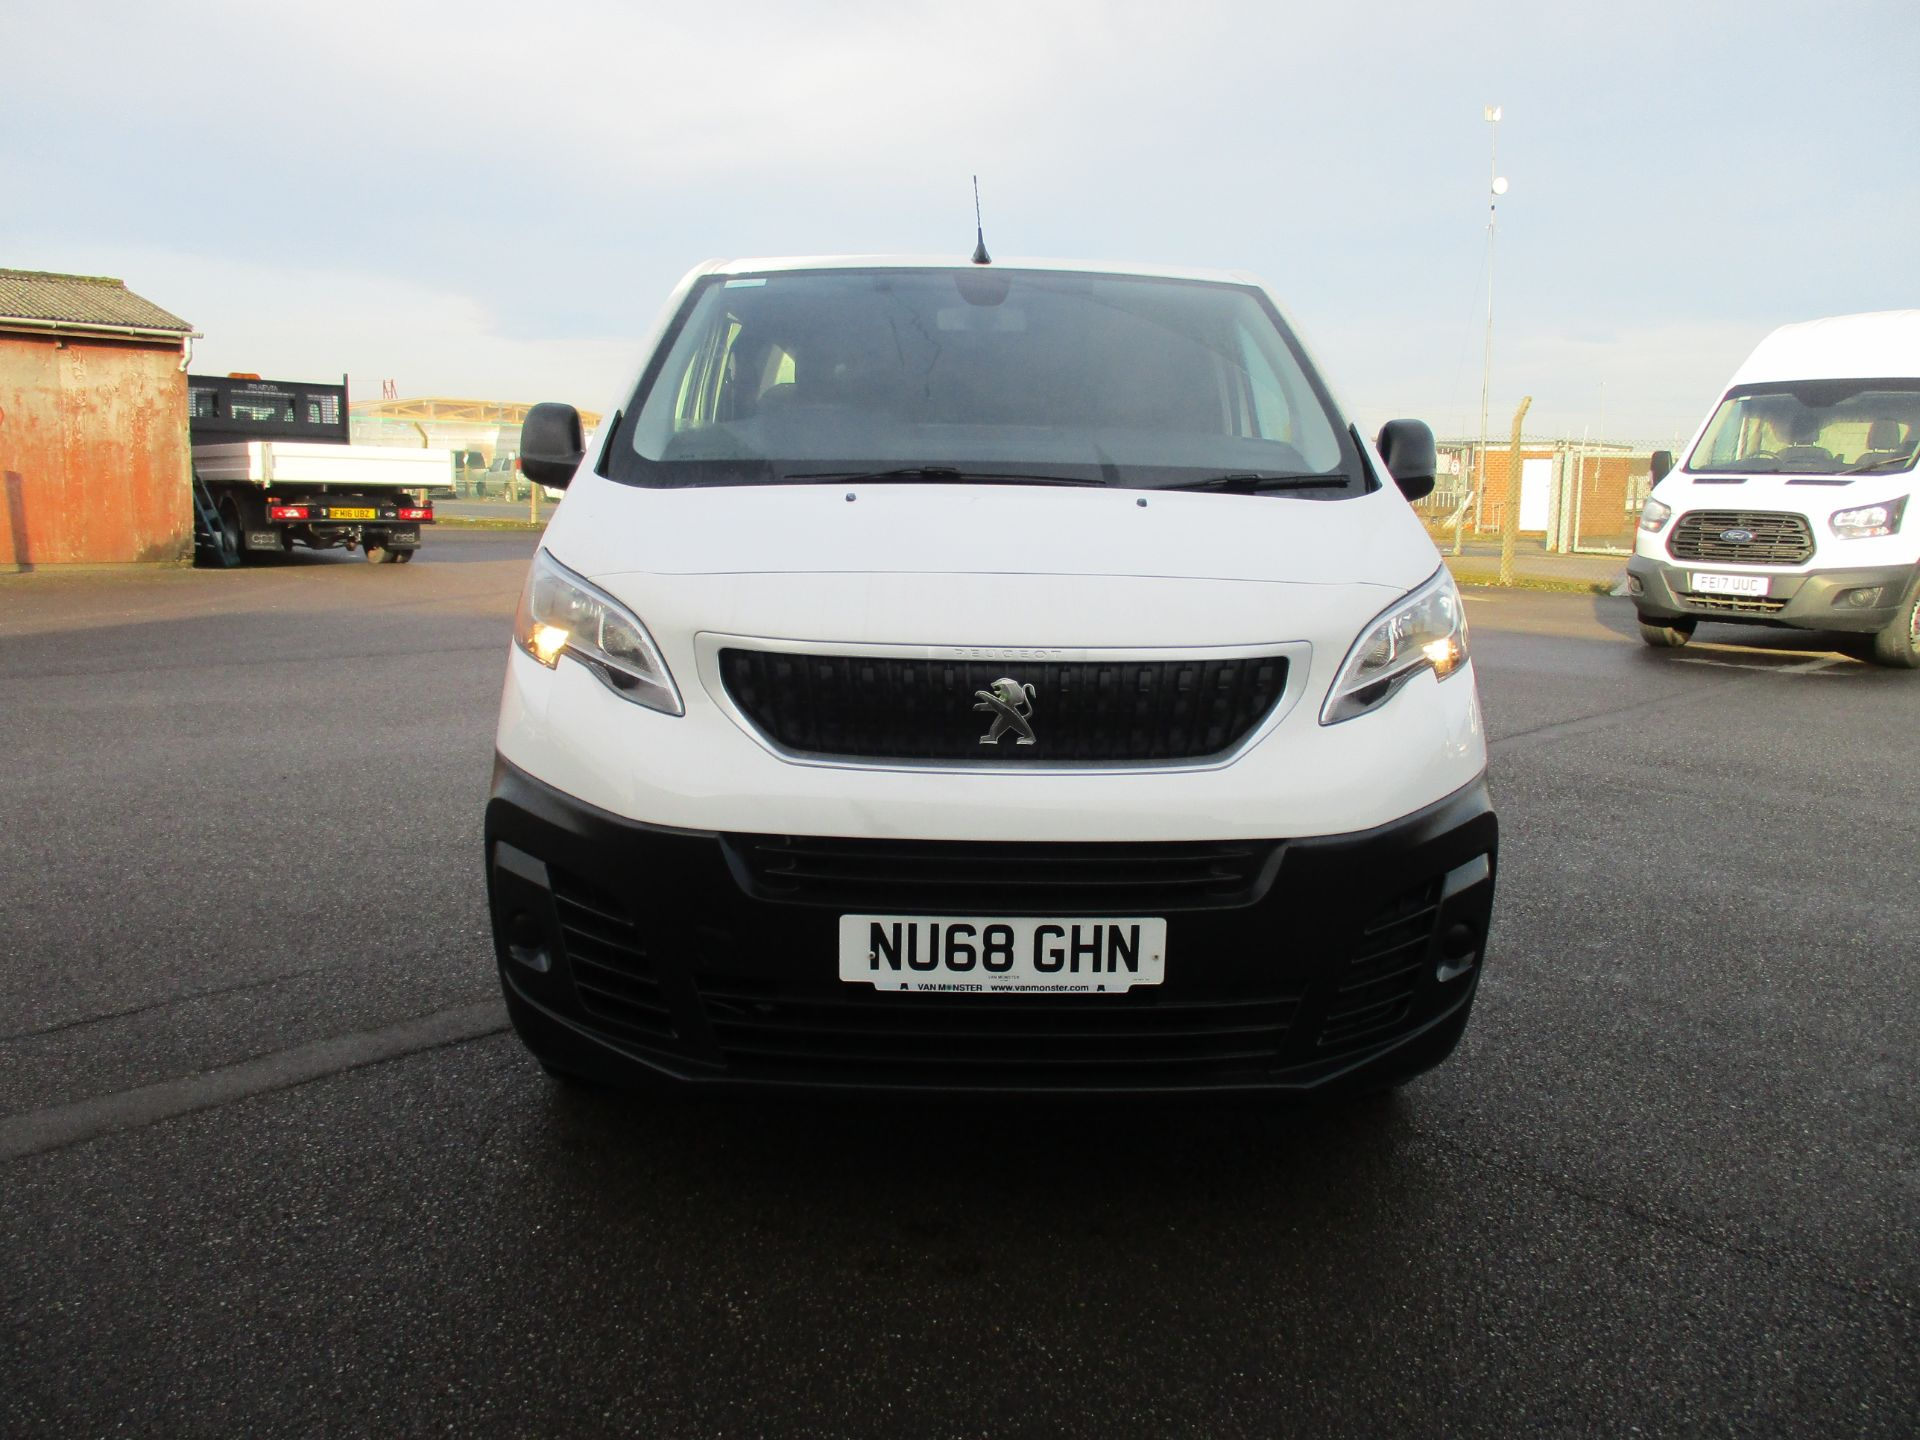 2018 Peugeot Expert STANDARD 1000 1.6 BLUE HDI 95 PROFESSIONAL EURO 6. AIR CON (NU68GHN) Image 2